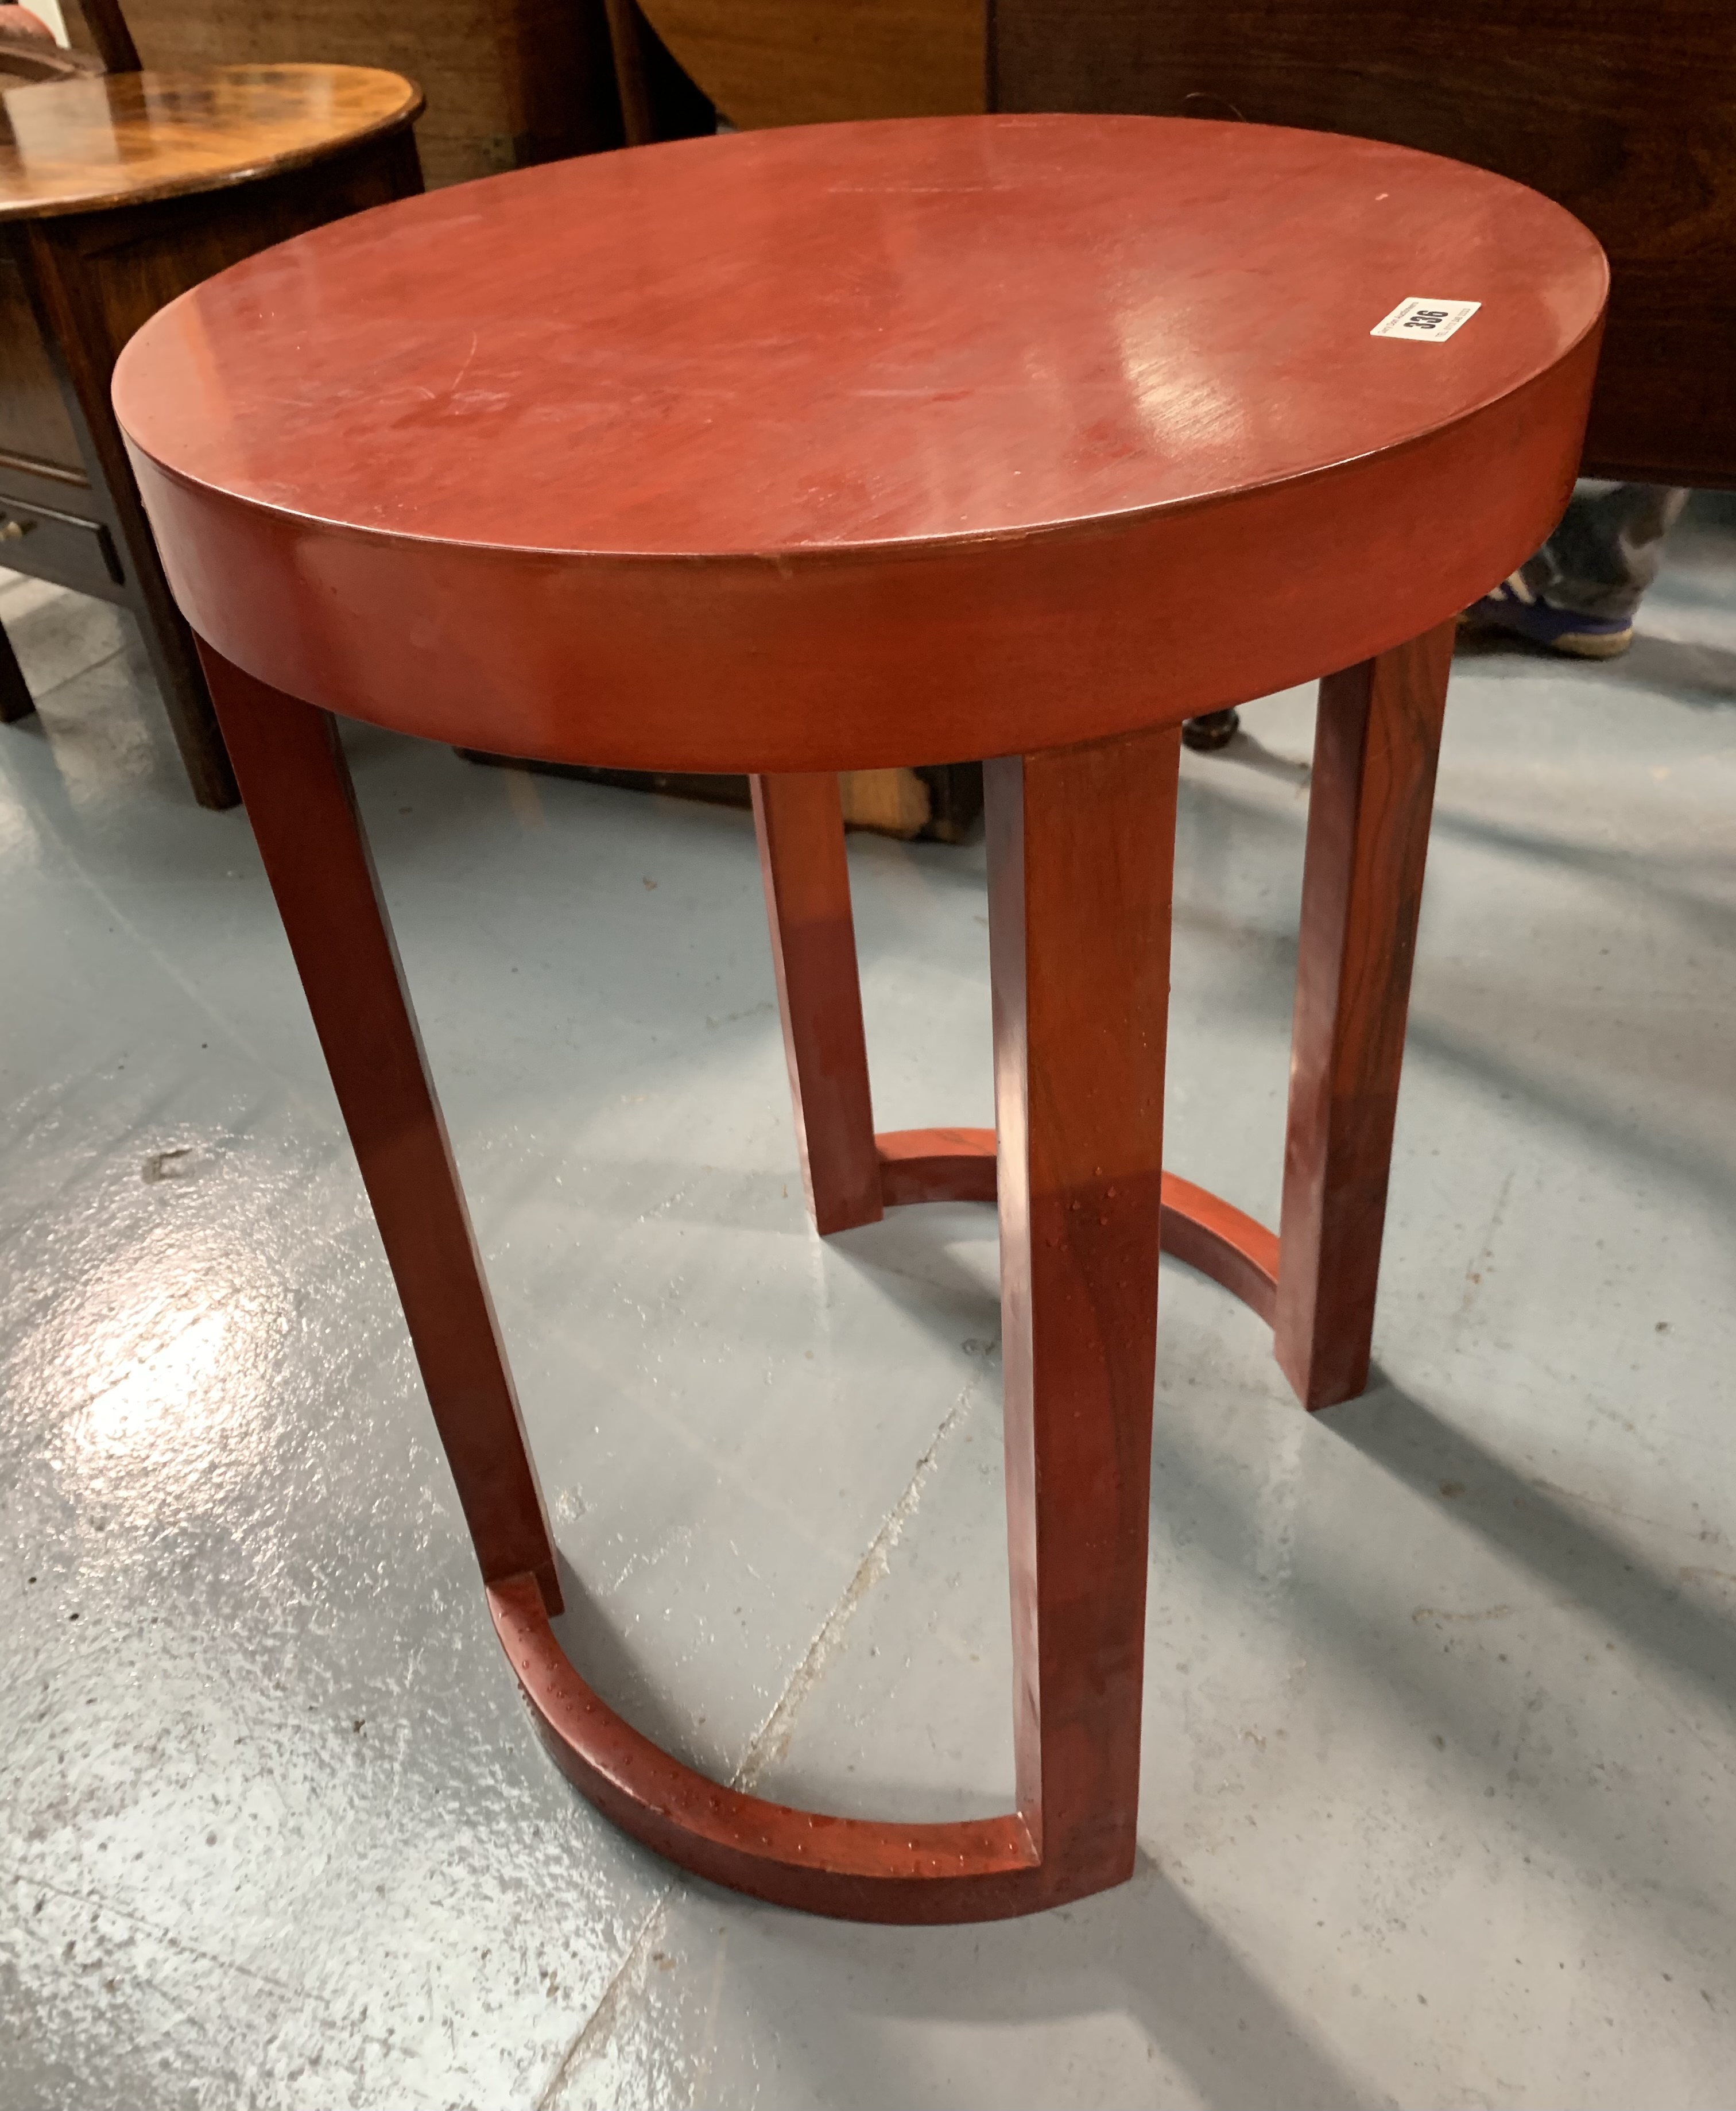 """Modern round occasional table, 18"""" diameter, 24"""" high - Image 2 of 4"""